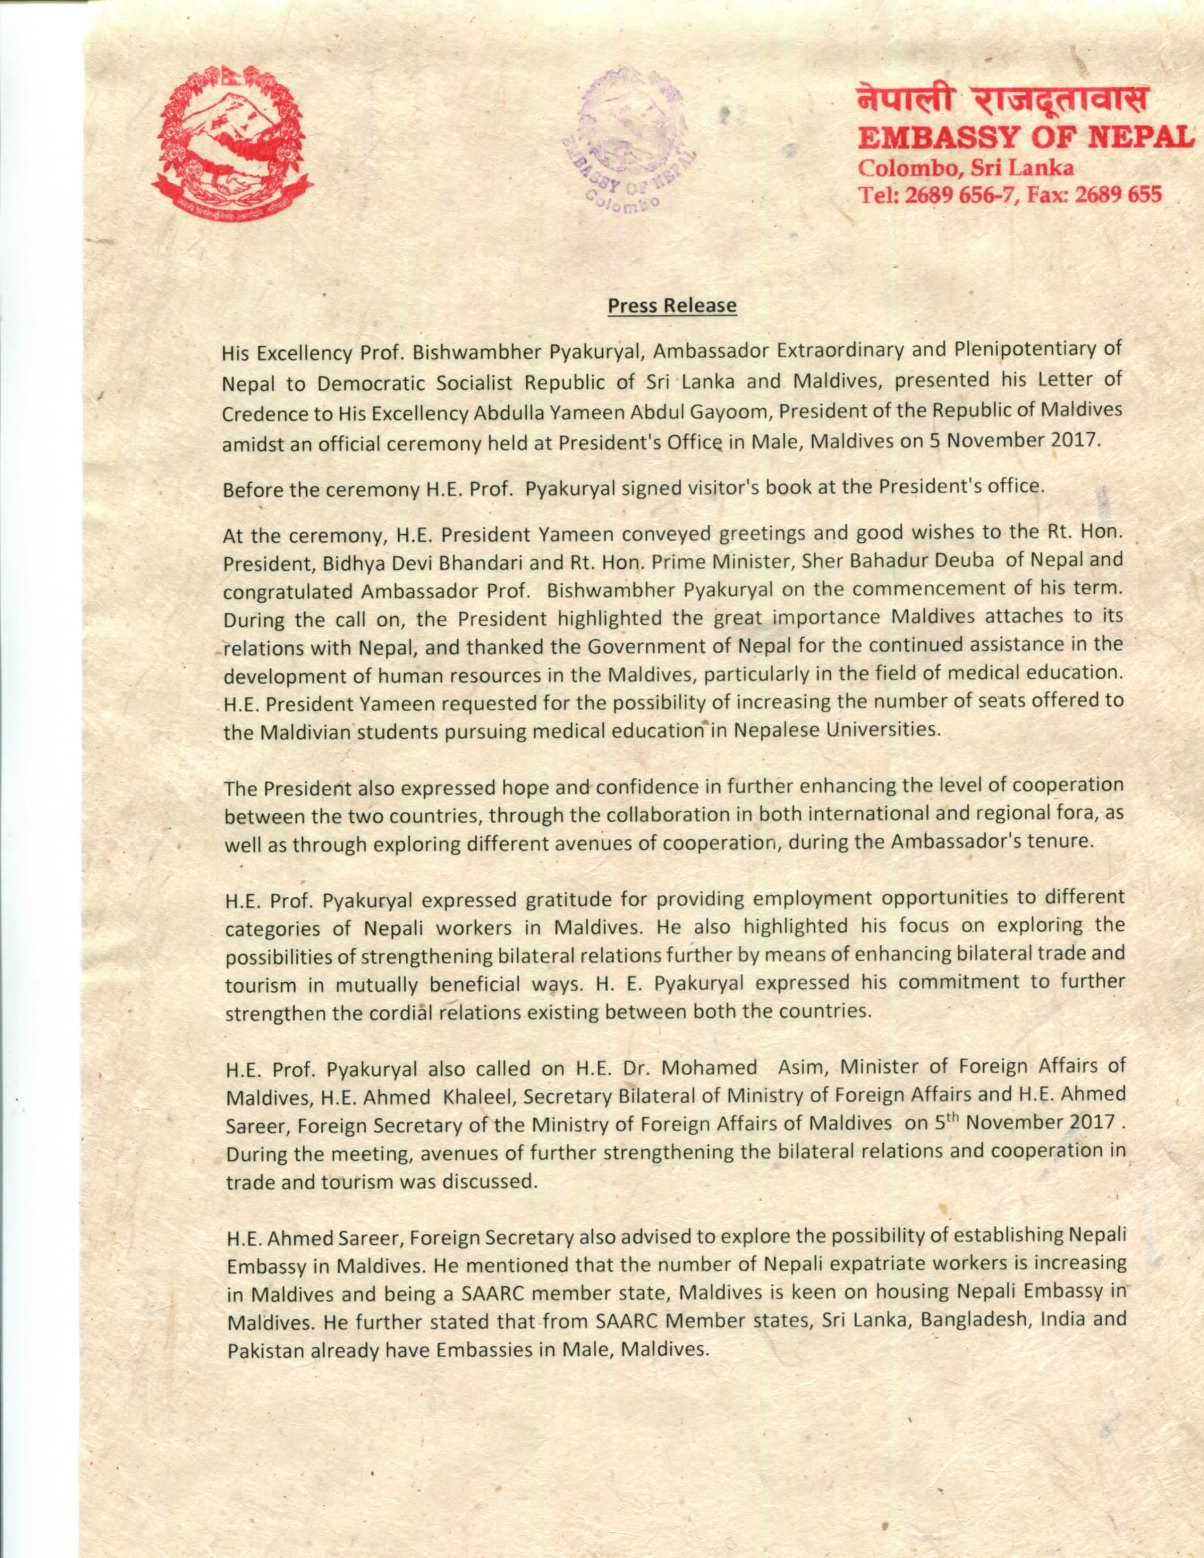 Press Release issued by Embassy of Nepal, Colombo on